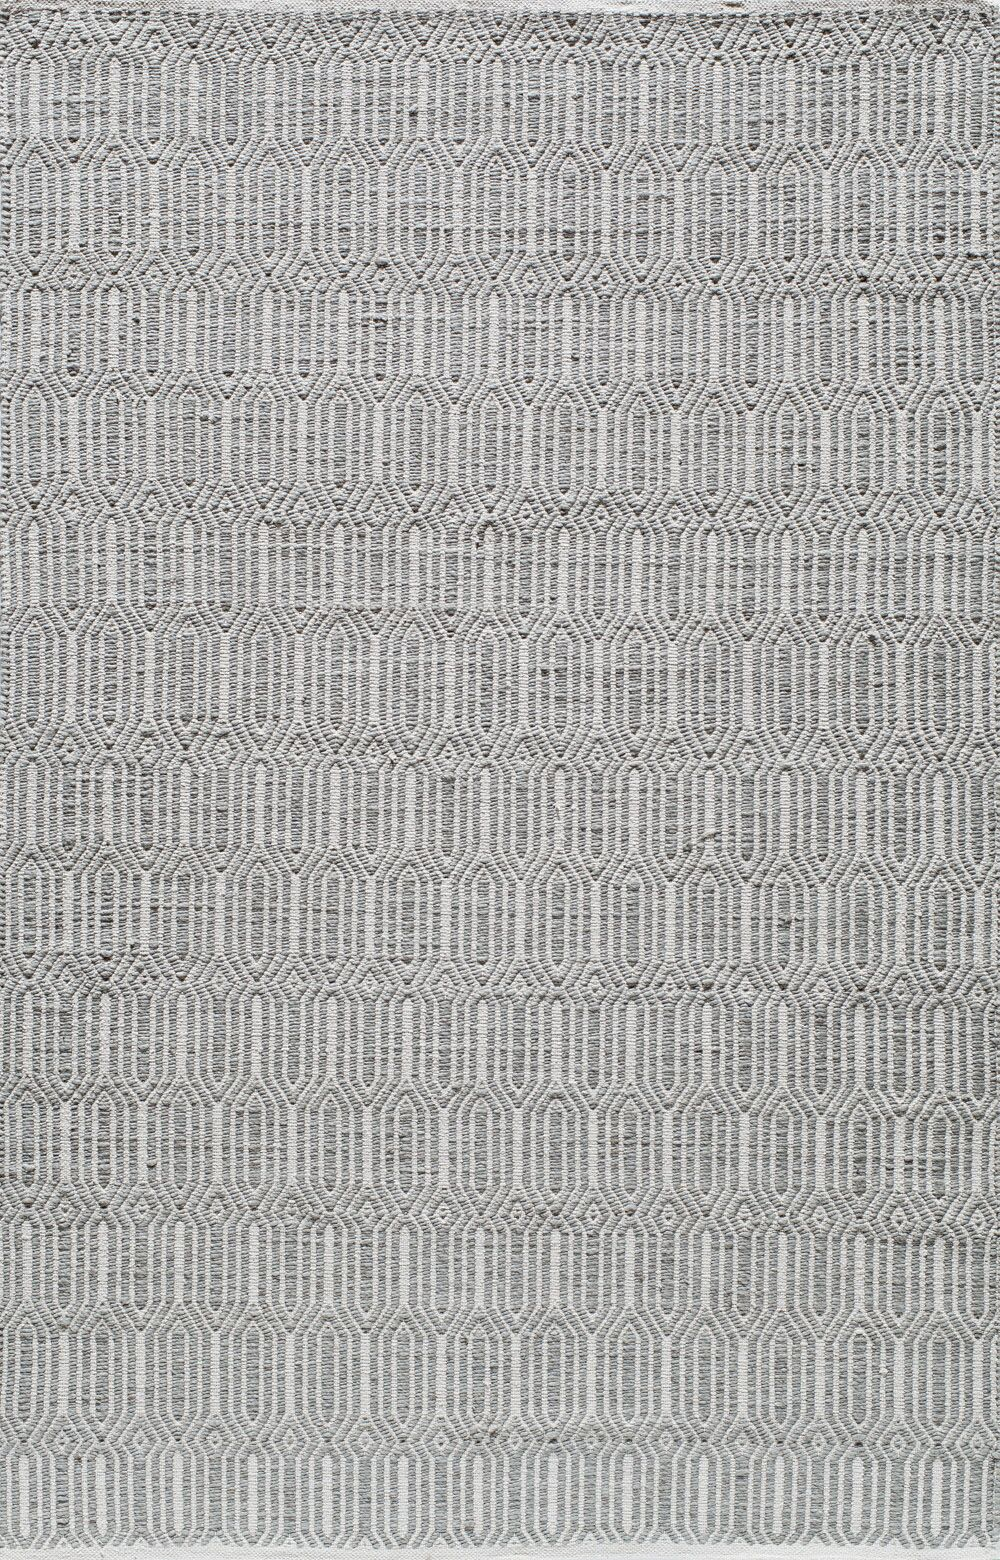 Hand-Woven Silver Area Rug Rug Size: Rectangle 5' x 8'